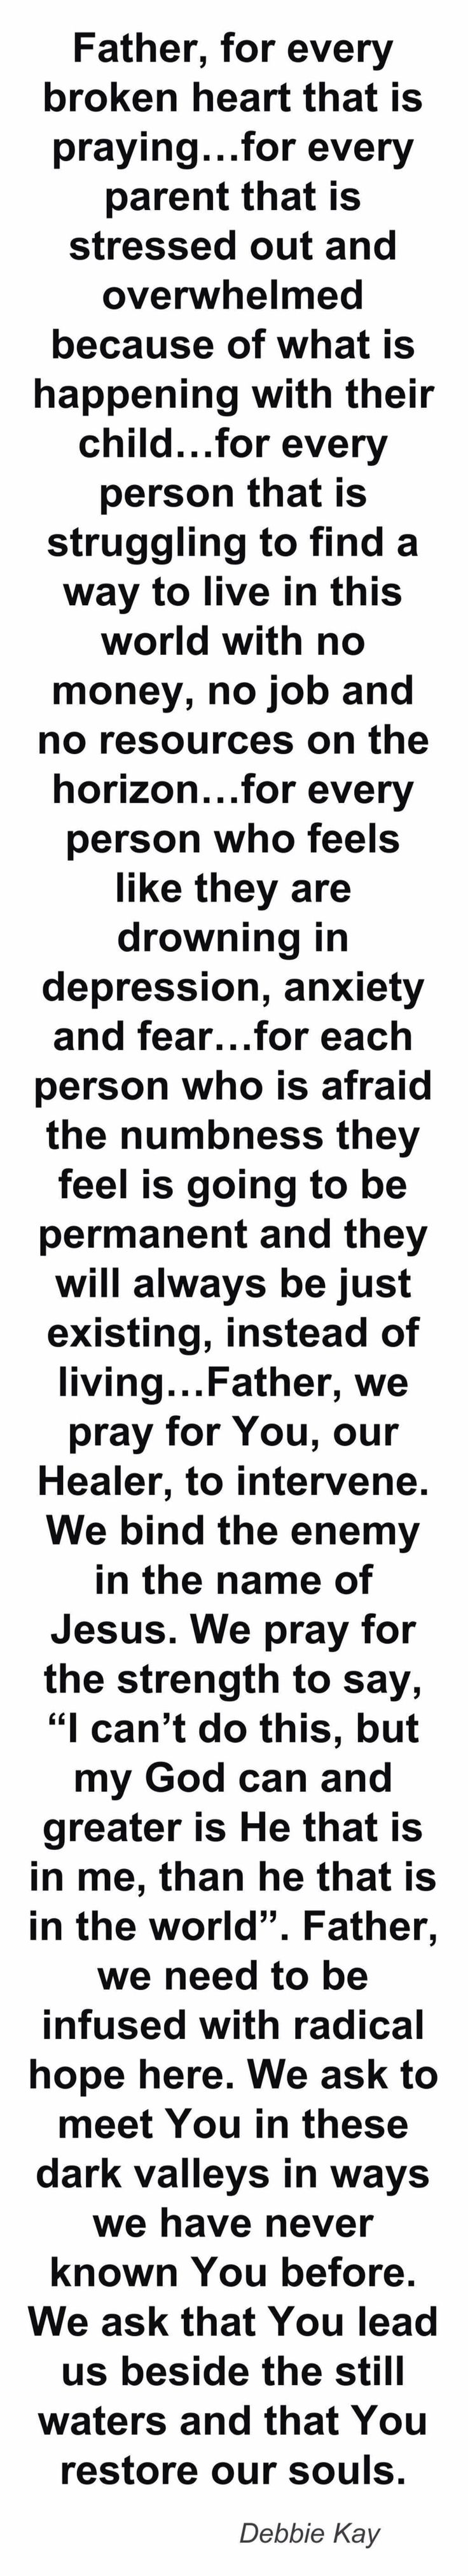 ❤In Jesus name: Amen.....What a beautiful prayer. Another one to add to my daily list of prayer. HF~